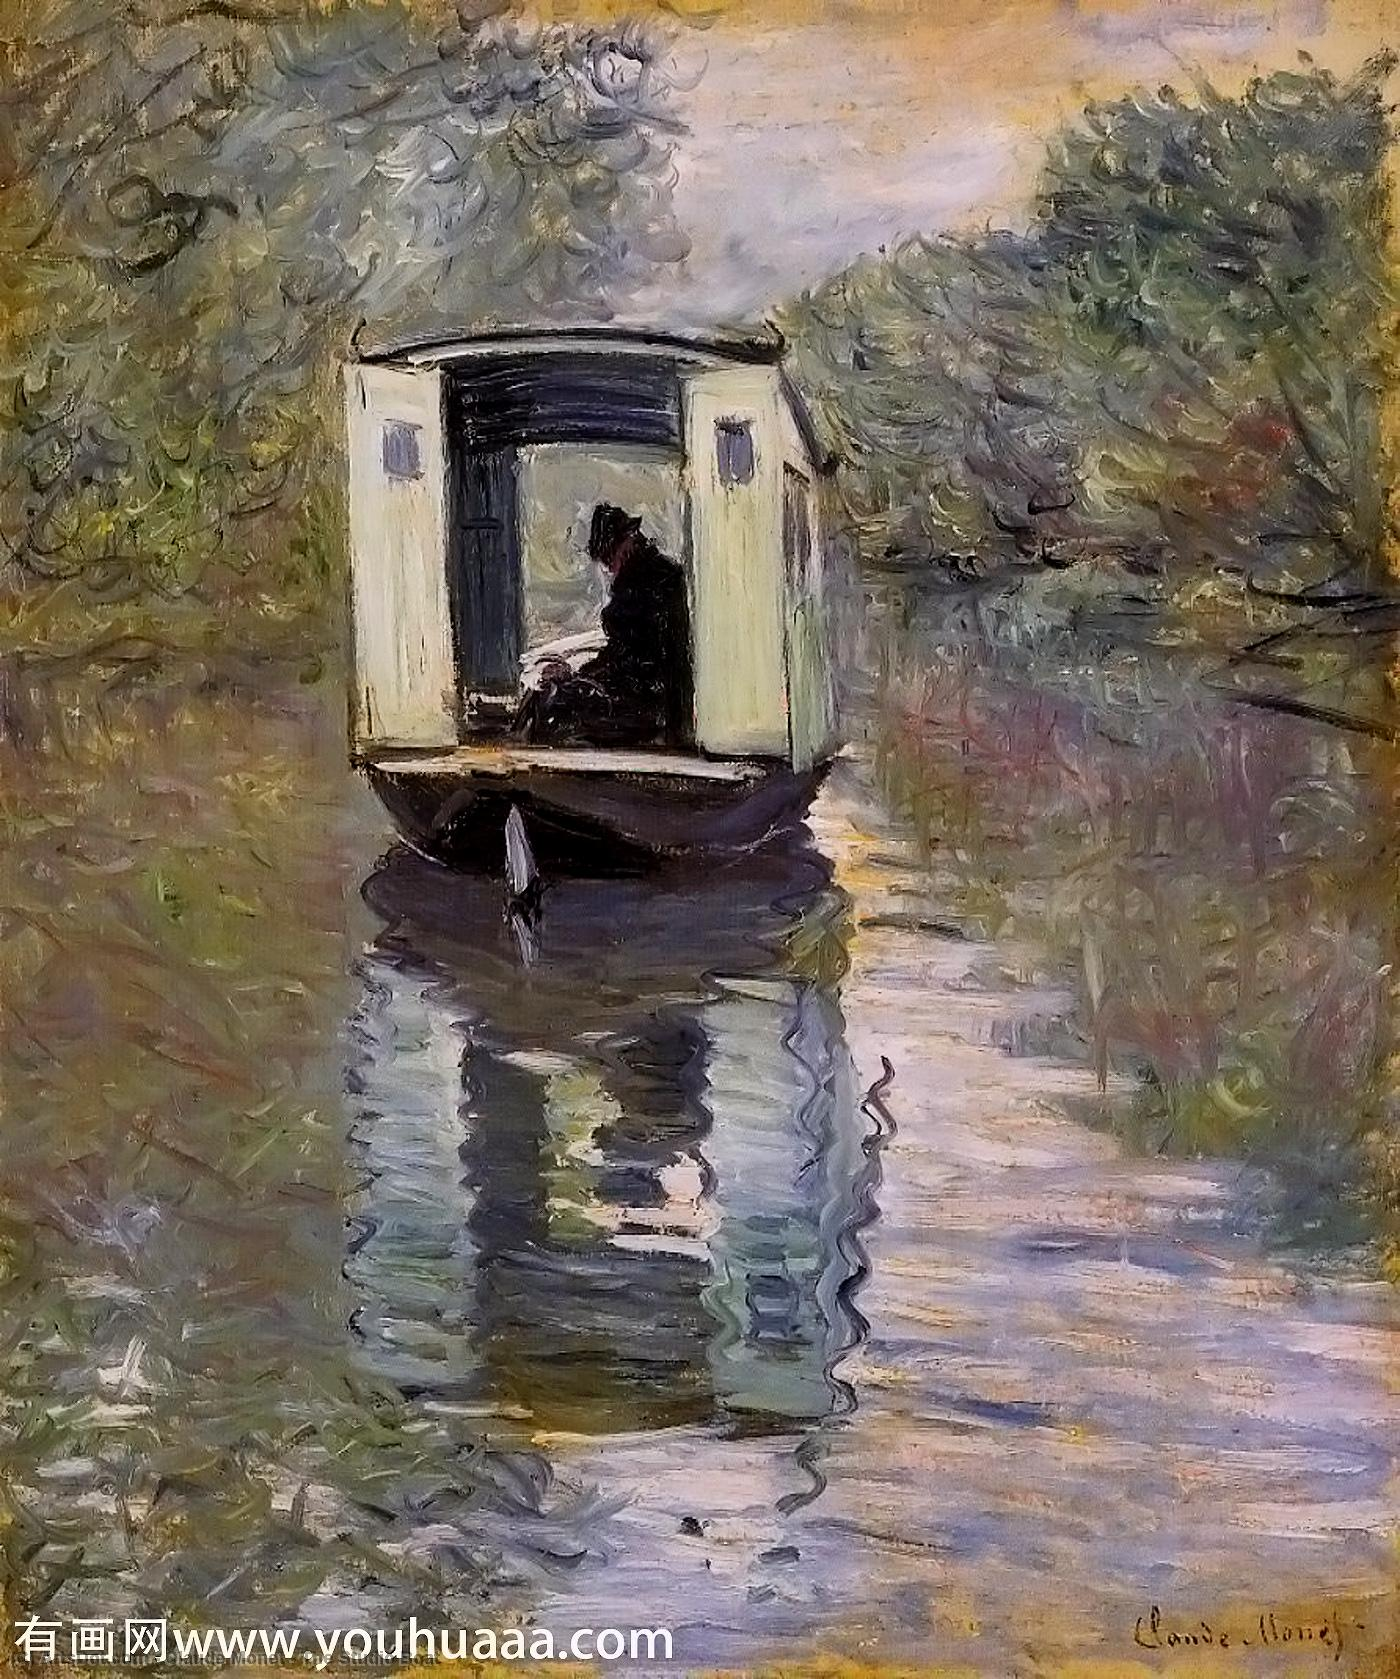 Wikioo.org - The Encyclopedia of Fine Arts - Painting, Artwork by Claude Monet - The Studio Boat